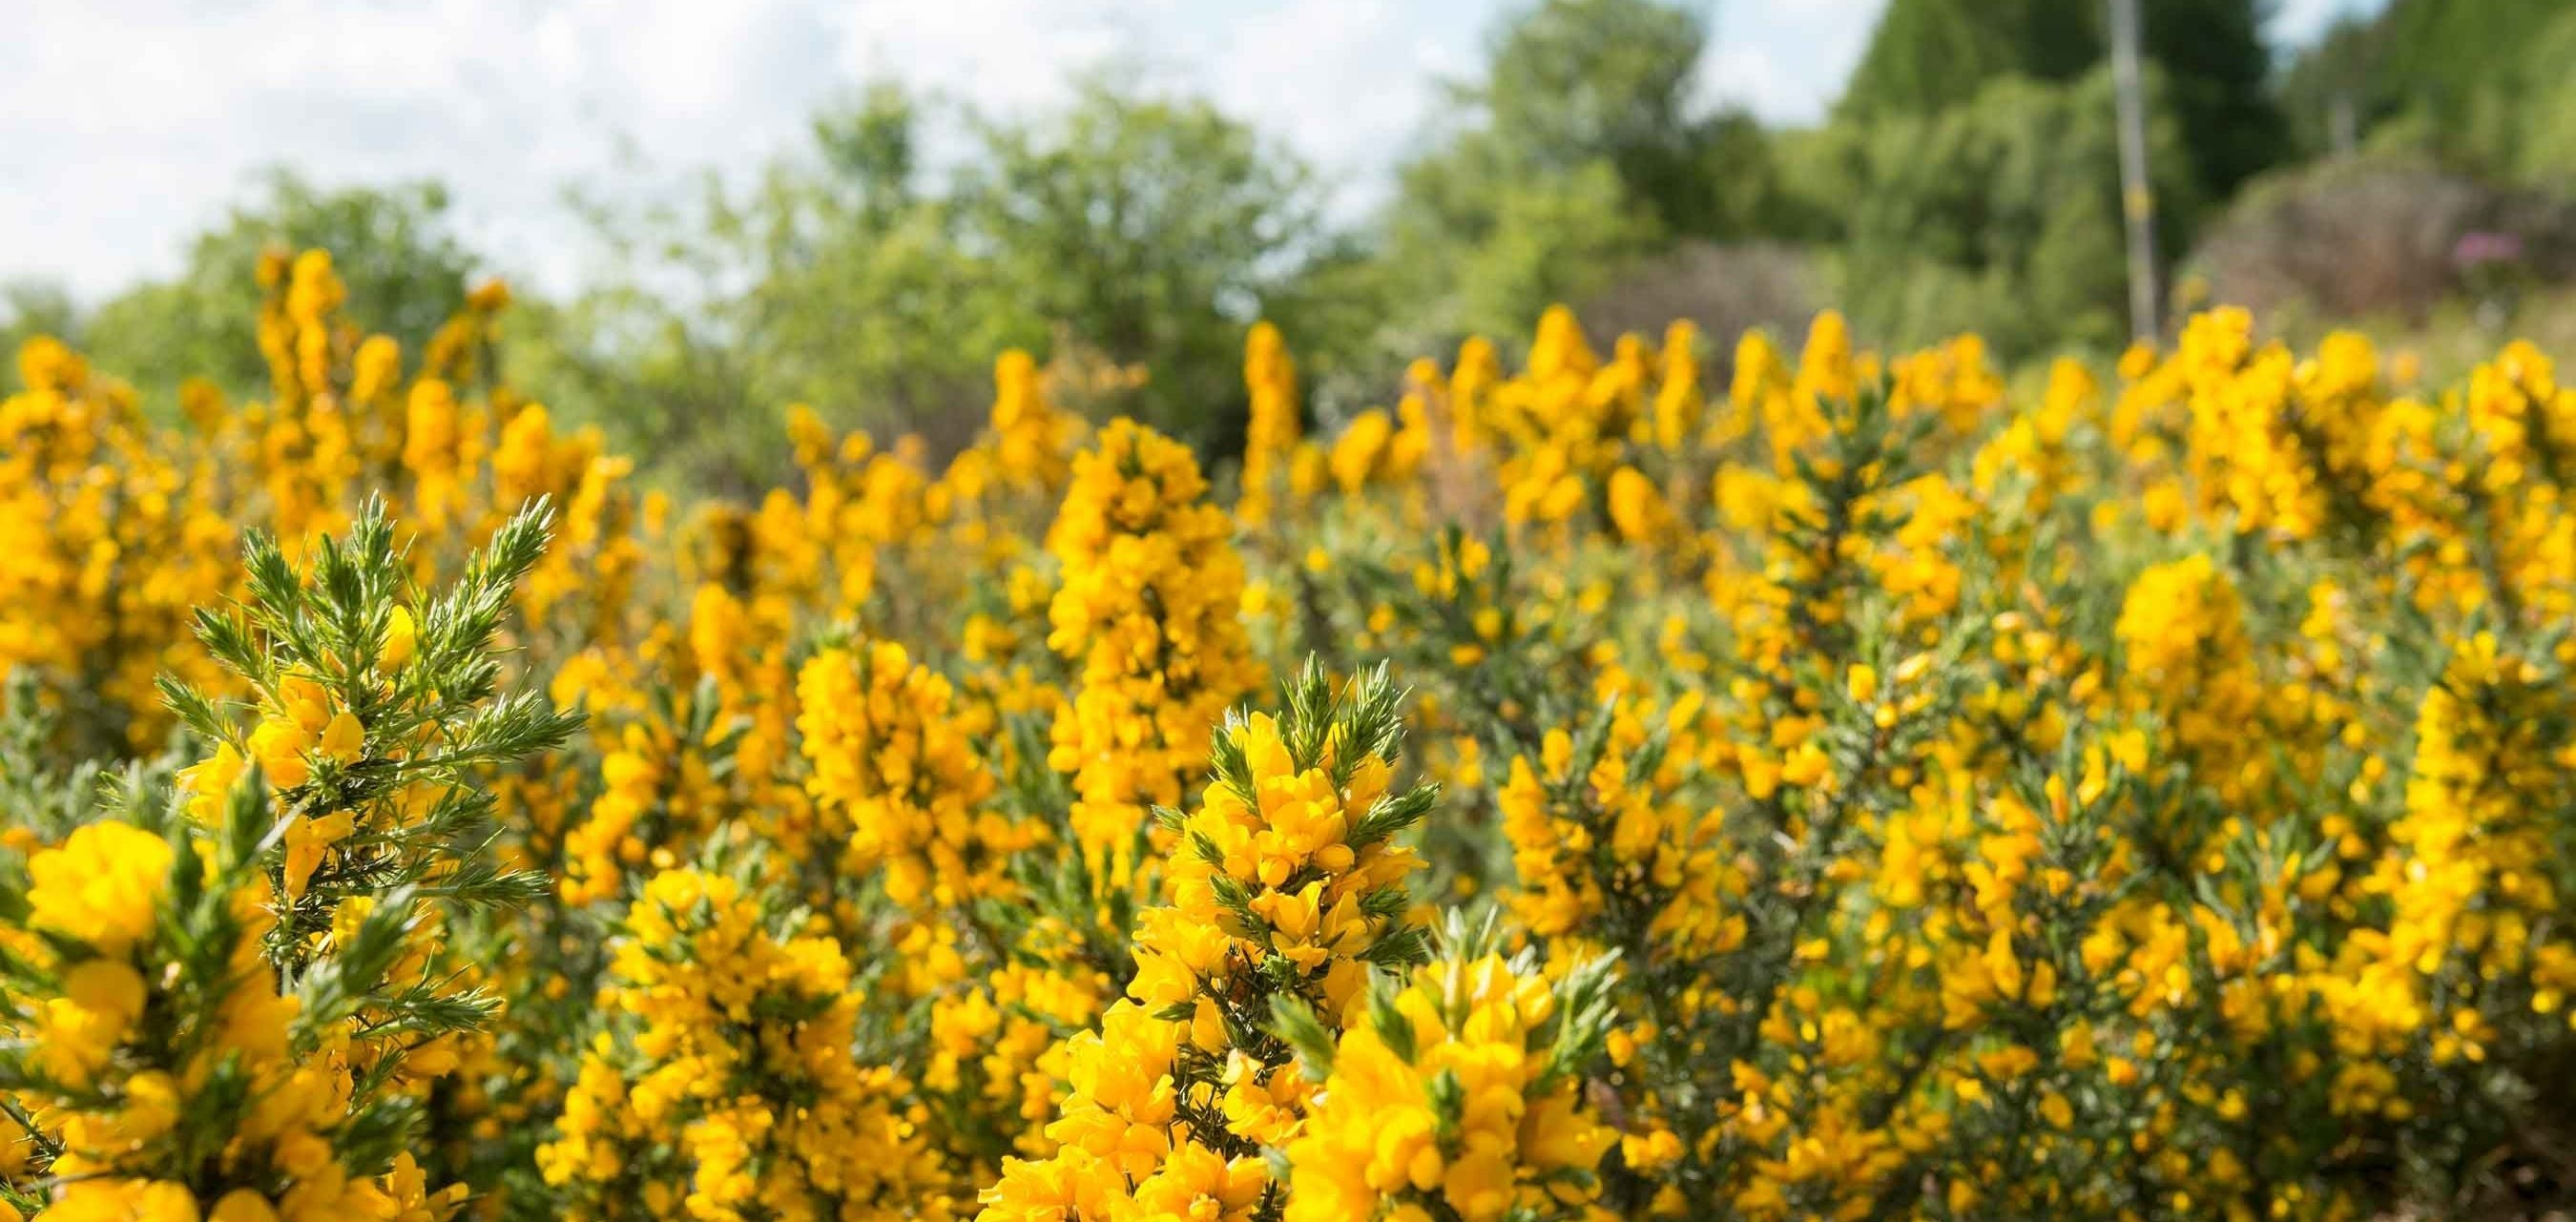 Image of yellow gorse in a field